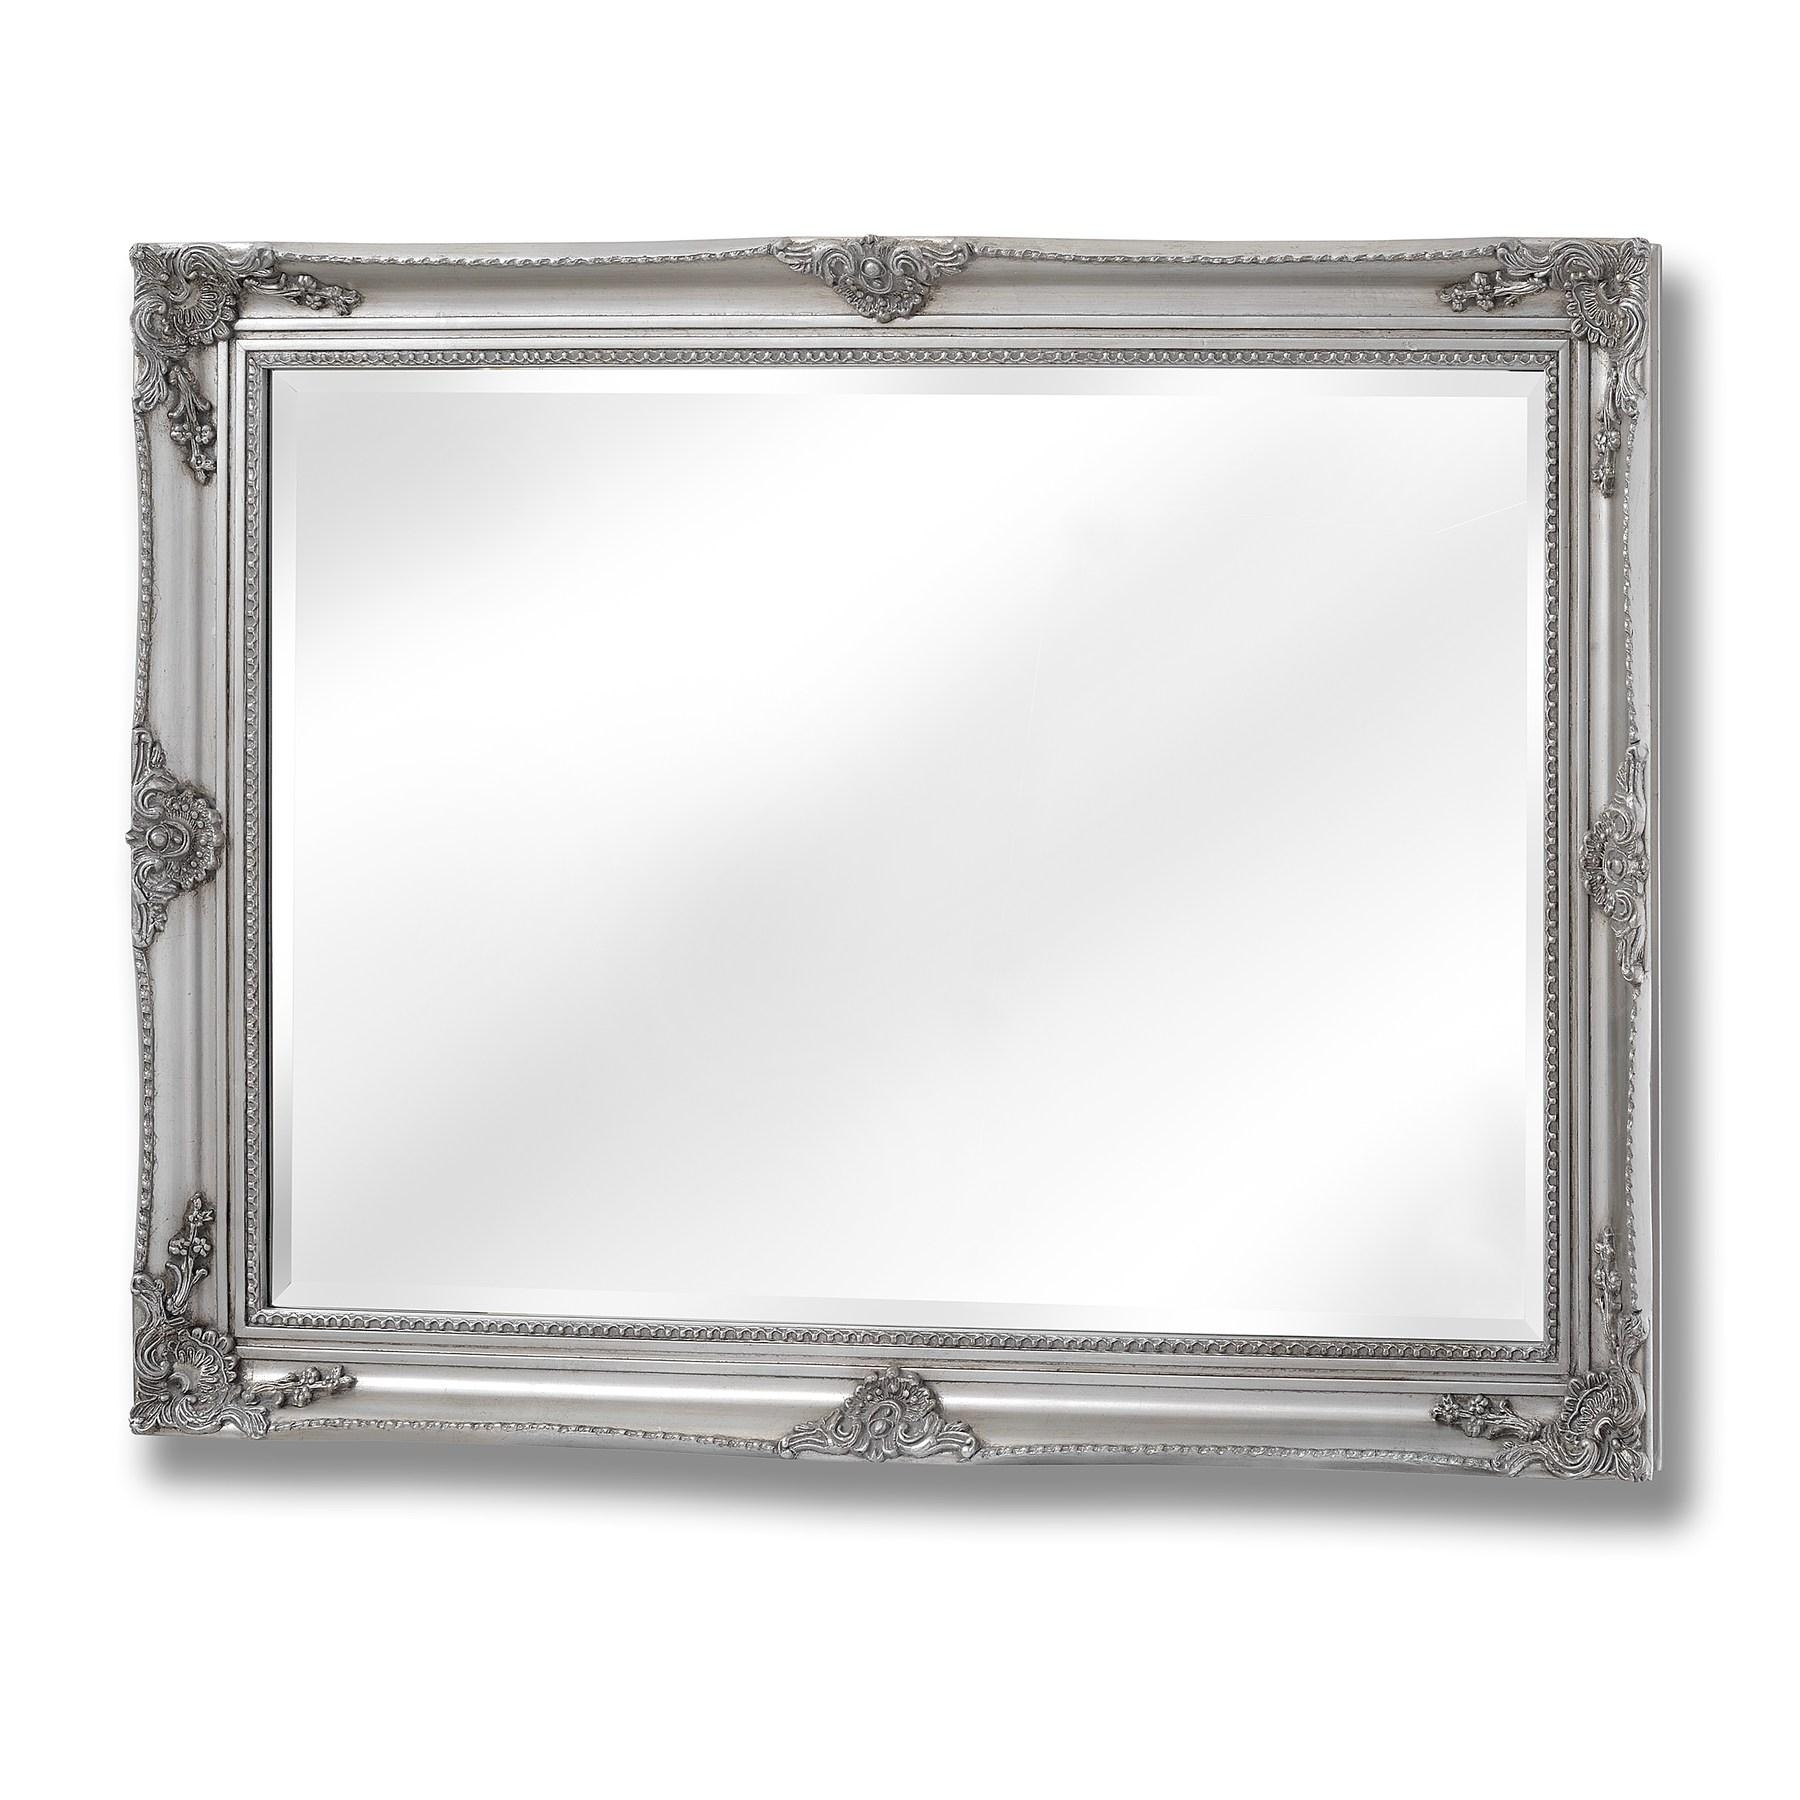 Baroque Style Large Silver Wall Mirror | Happy Home Interiors Intended For Baroque Mirror Silver (Image 3 of 20)